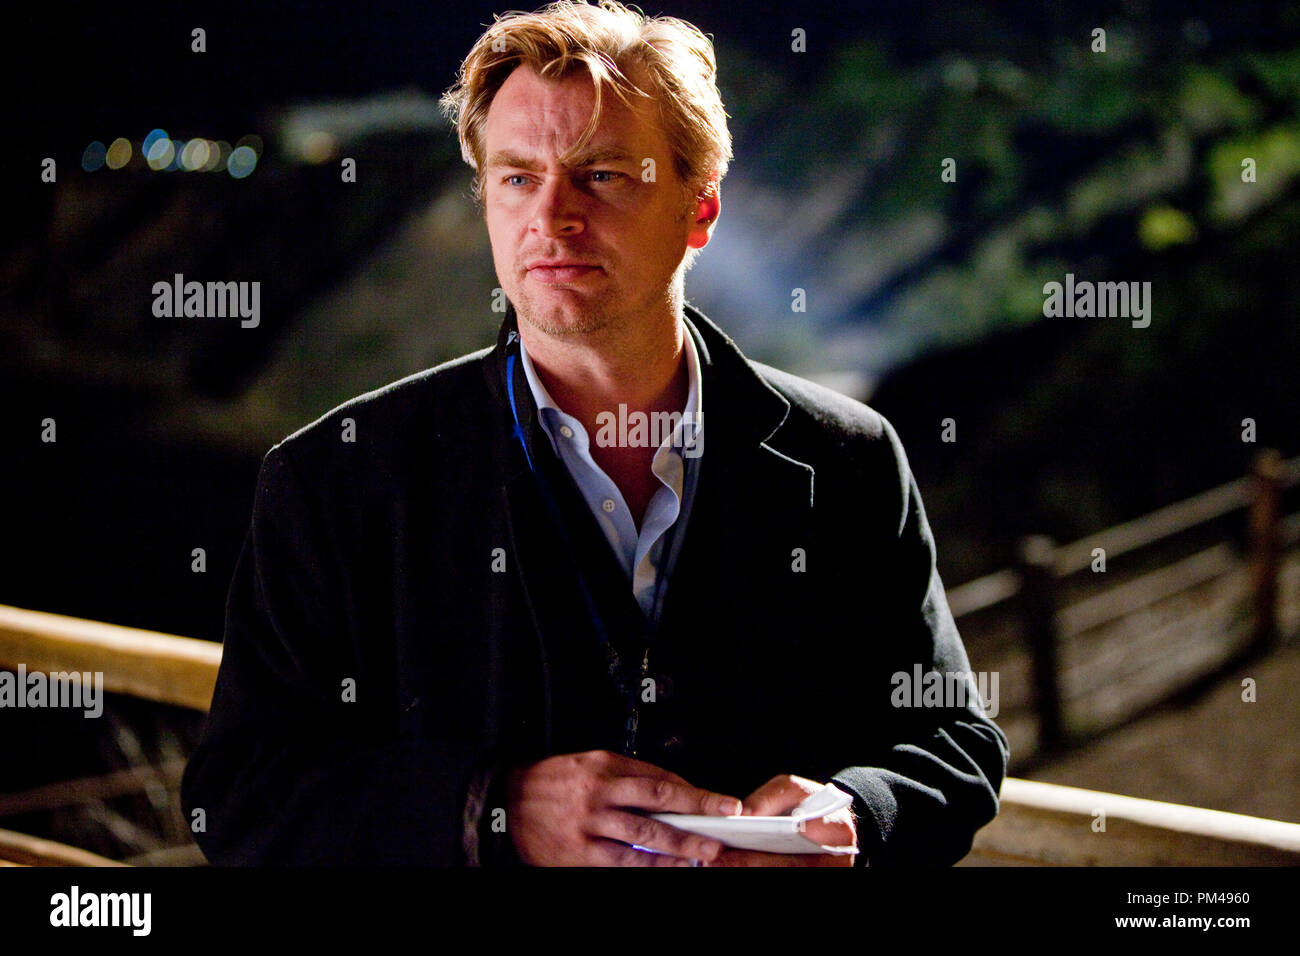 """Director CHRISTOPHER NOLAN on the set of Warner Bros. Pictures' and Legendary Pictures' sci-fi action film """"INCEPTION,"""" a Warner Bros. Pictures release. - Stock Image"""